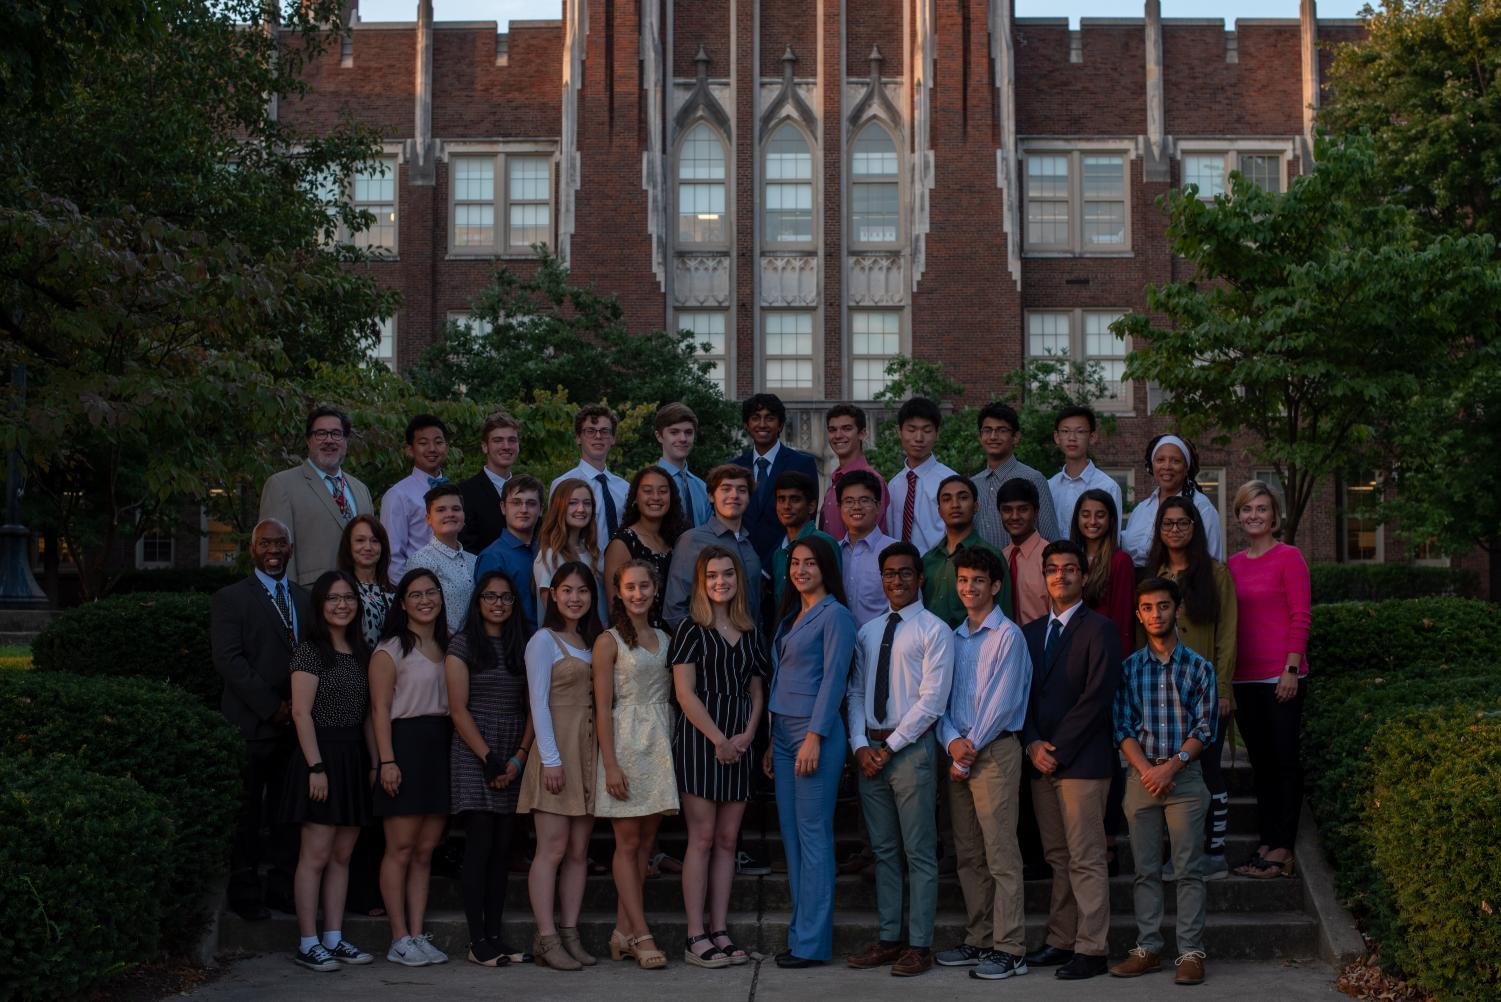 National Merit Semifinalists pose in front of Manual. Photo by Cesca Campisano.